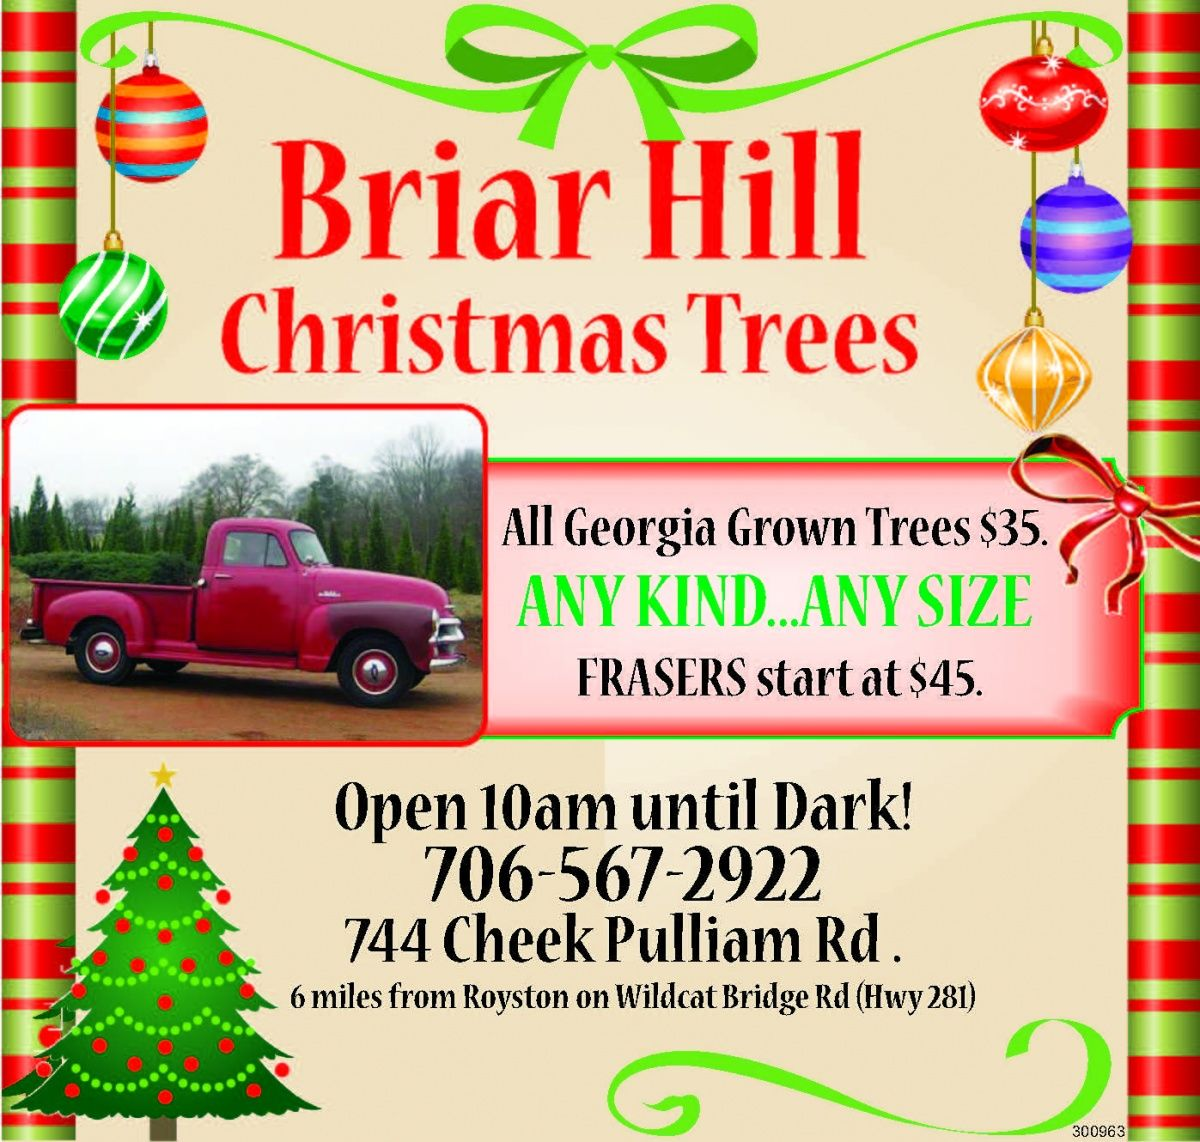 Christmas Tree Farms In North Georgia: All Georgia Grown Trees $35. ANY KIND... ANY SIZE FRASERS